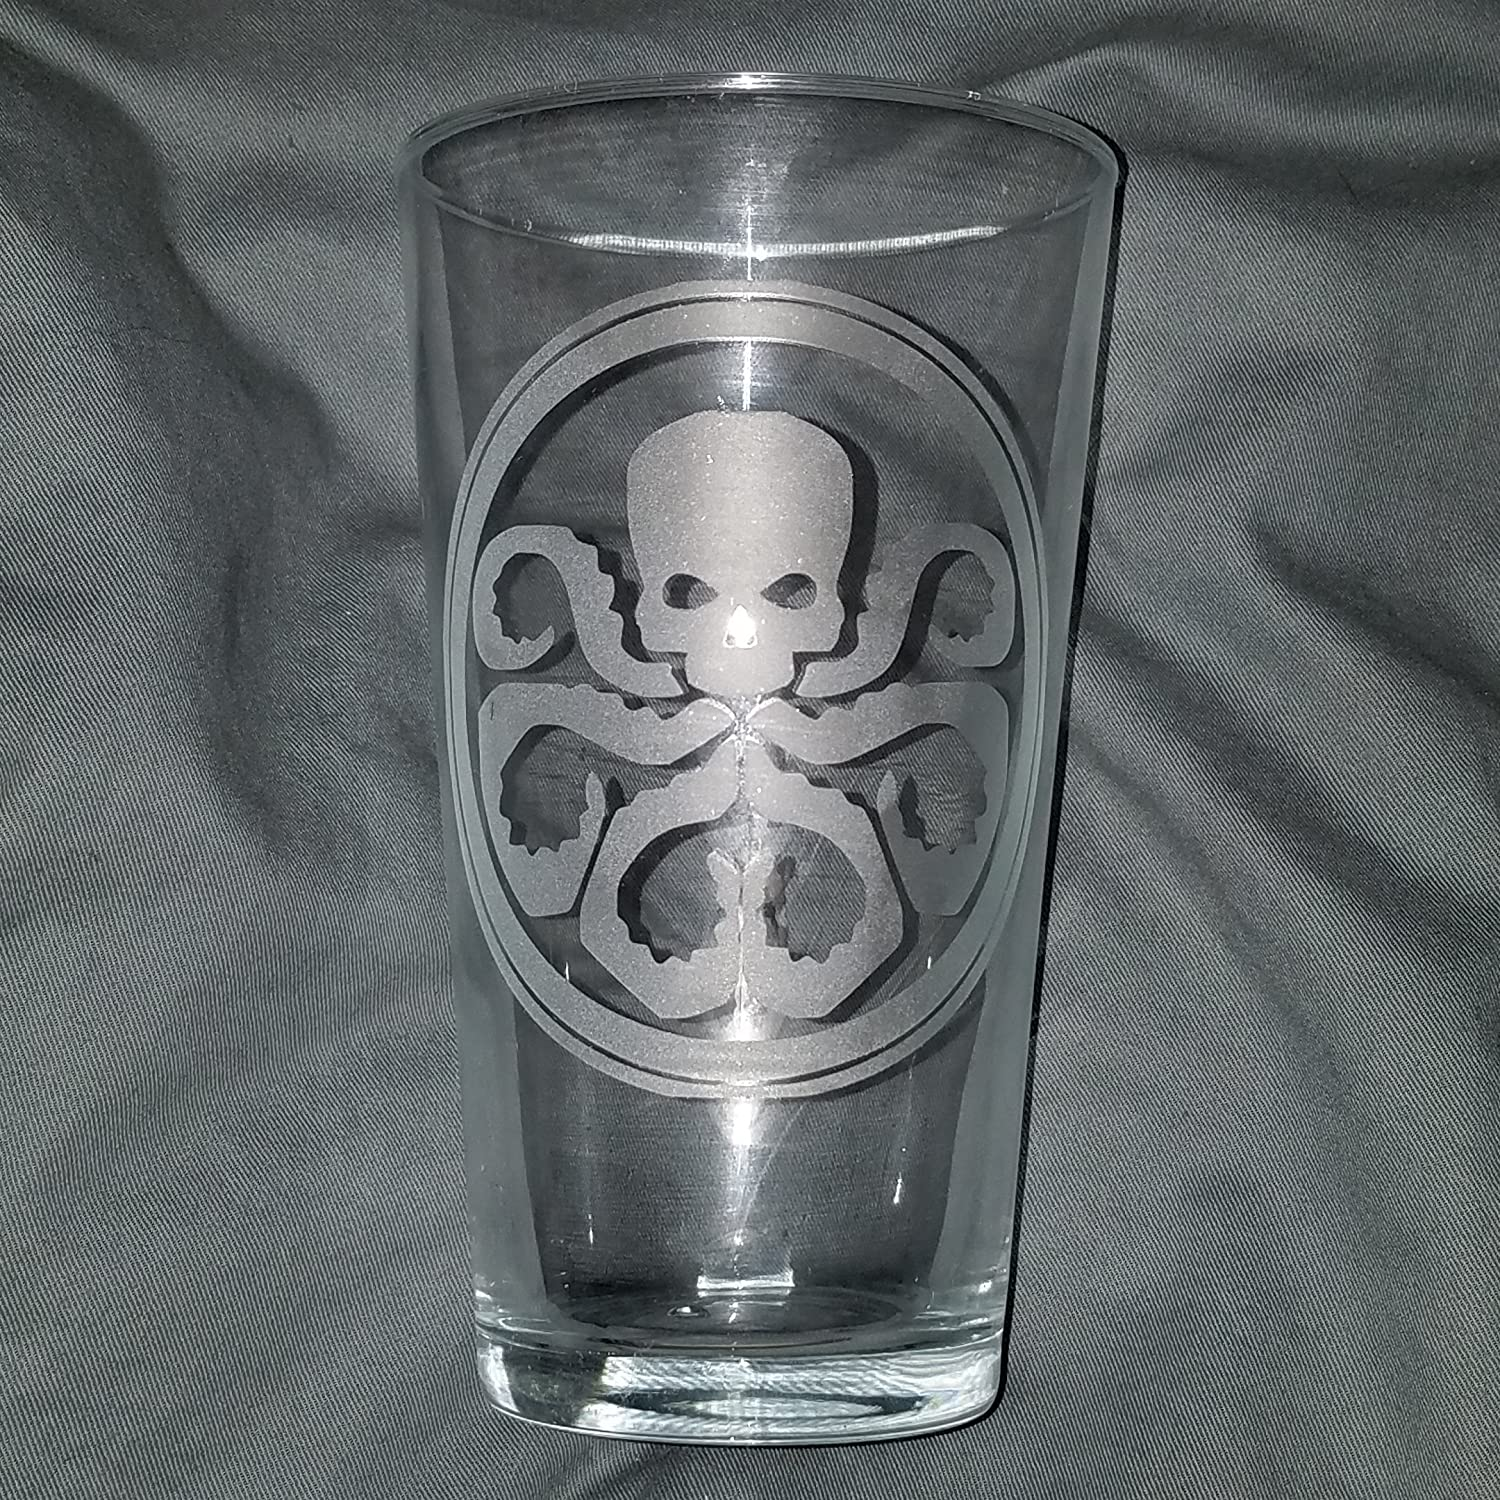 Hydra......from Agents of Shield....These are a set of 2 -16oz etched glass that's a must!